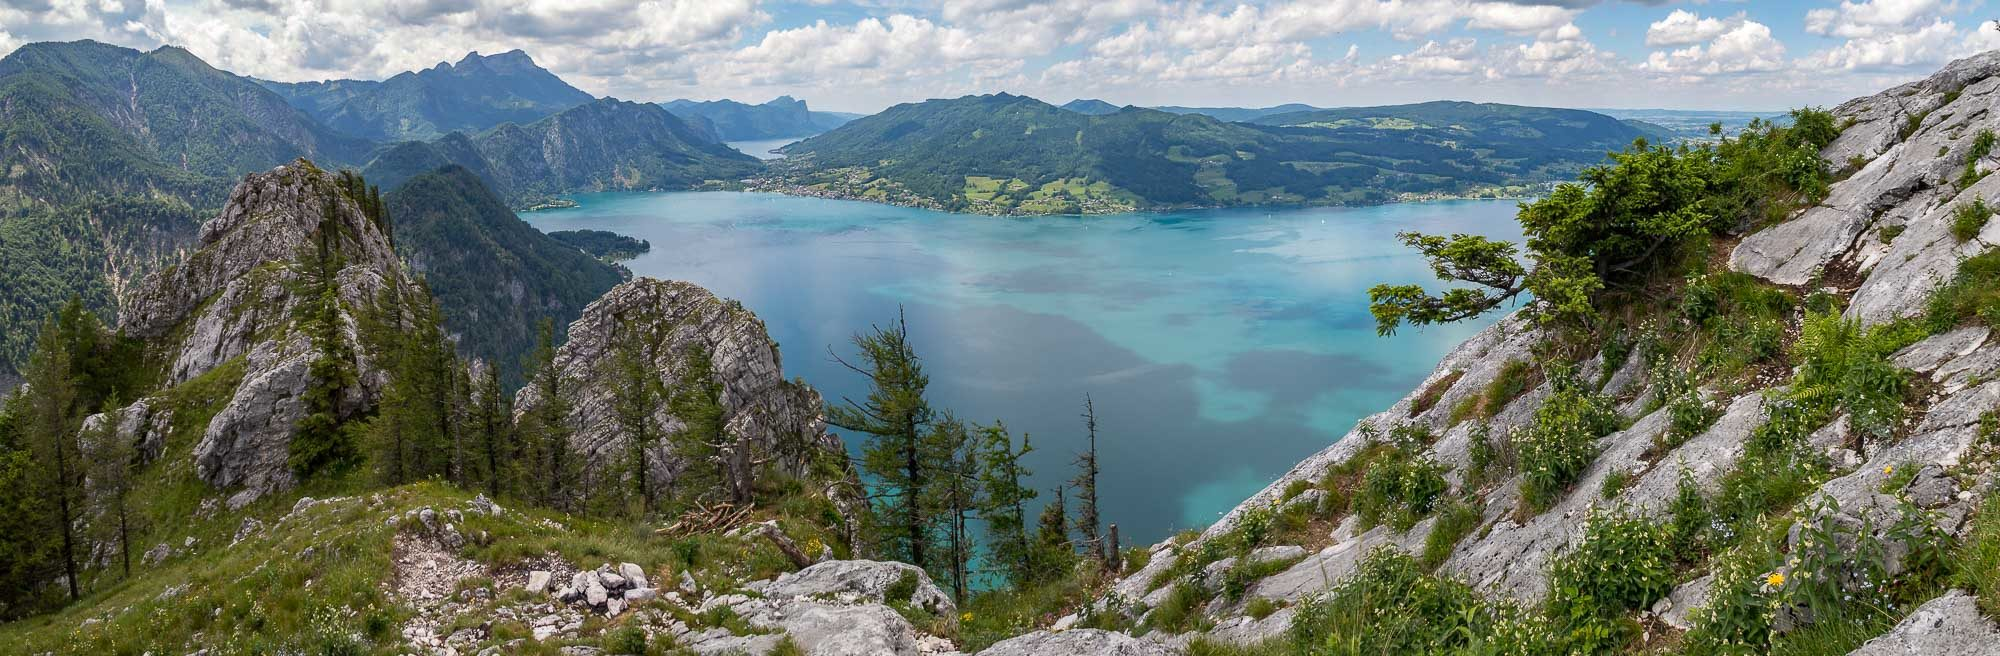 Grosser Schoberstein am Attersee